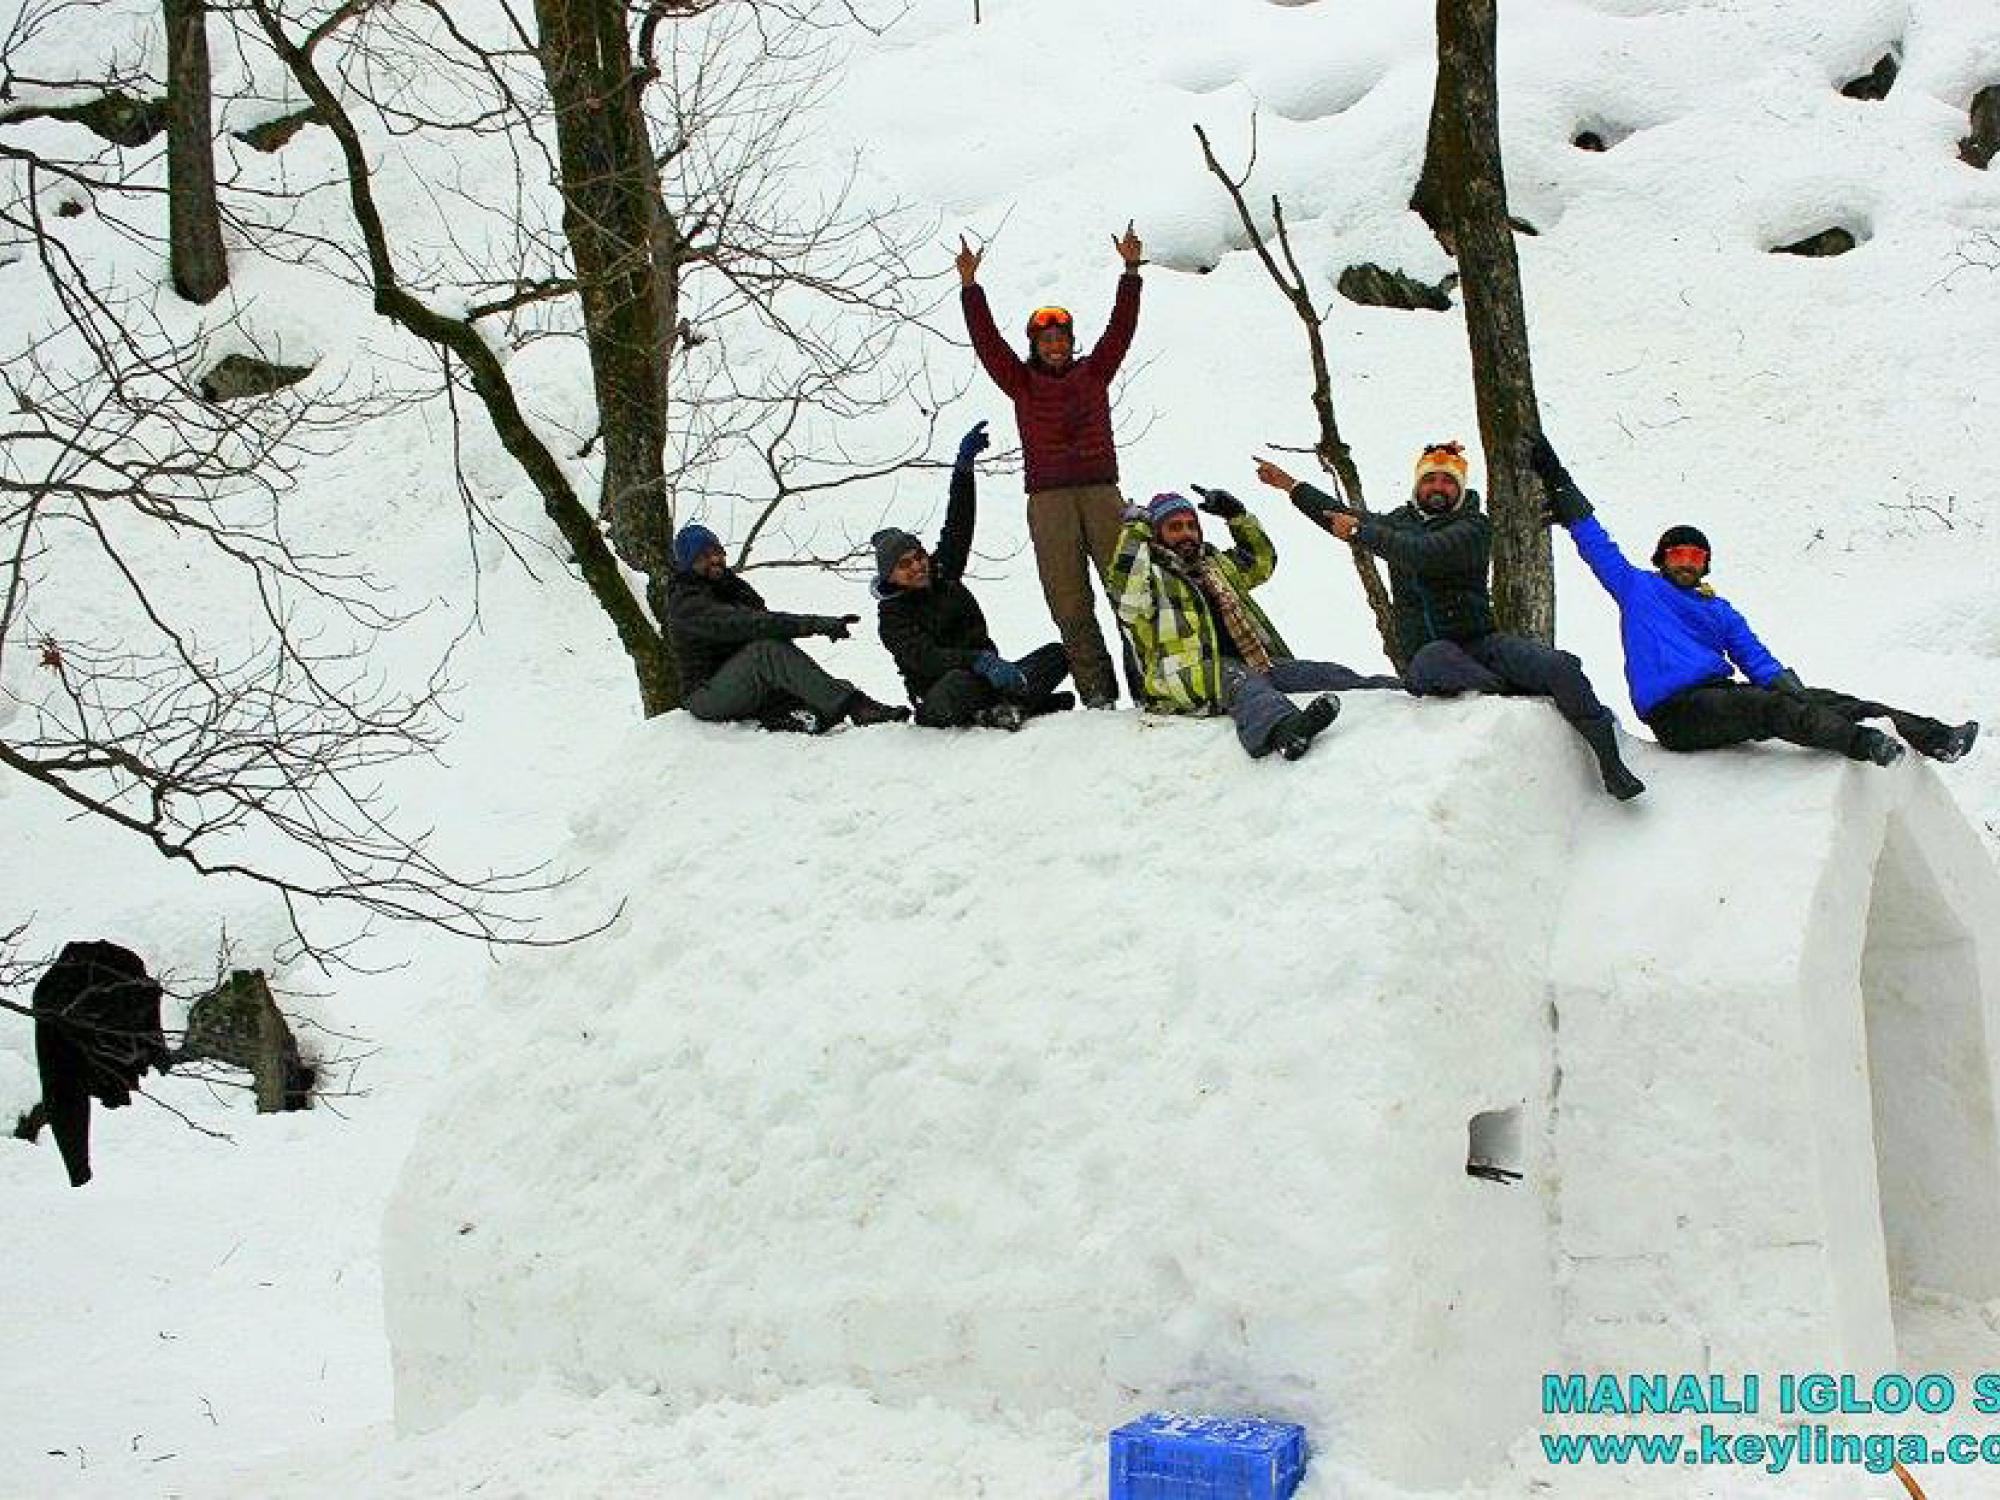 Manali Igloo Stay 3